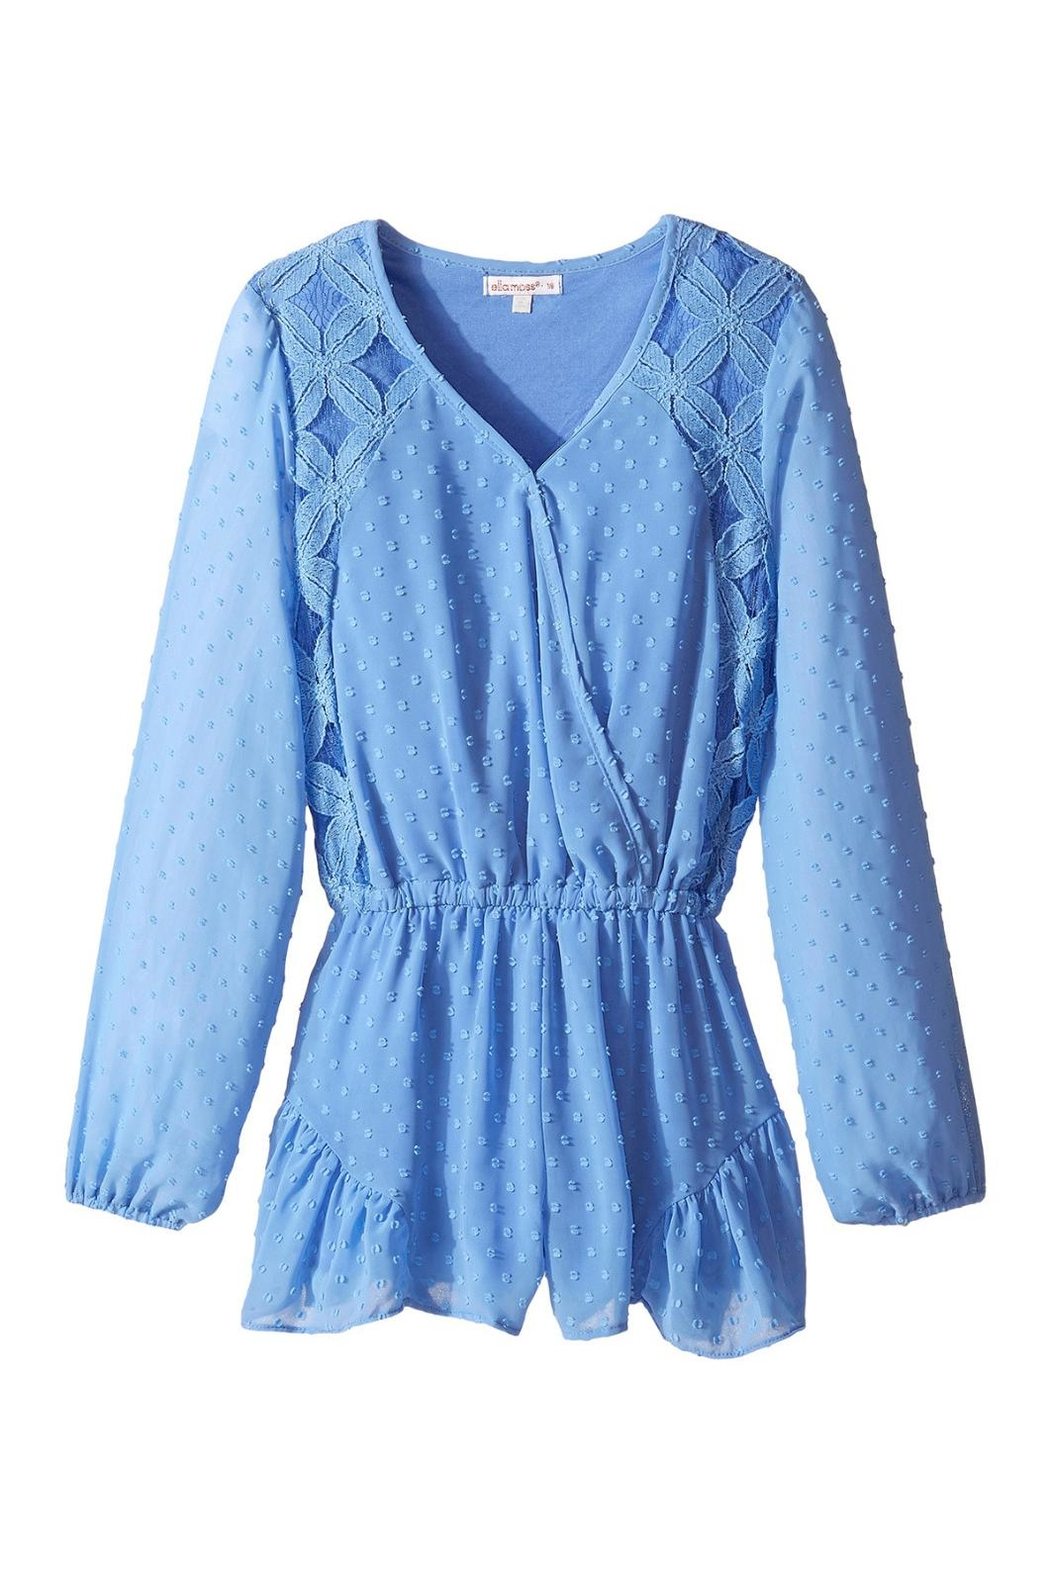 Ella Moss Blue Izzy-Jasmine Romper - Front Cropped Image